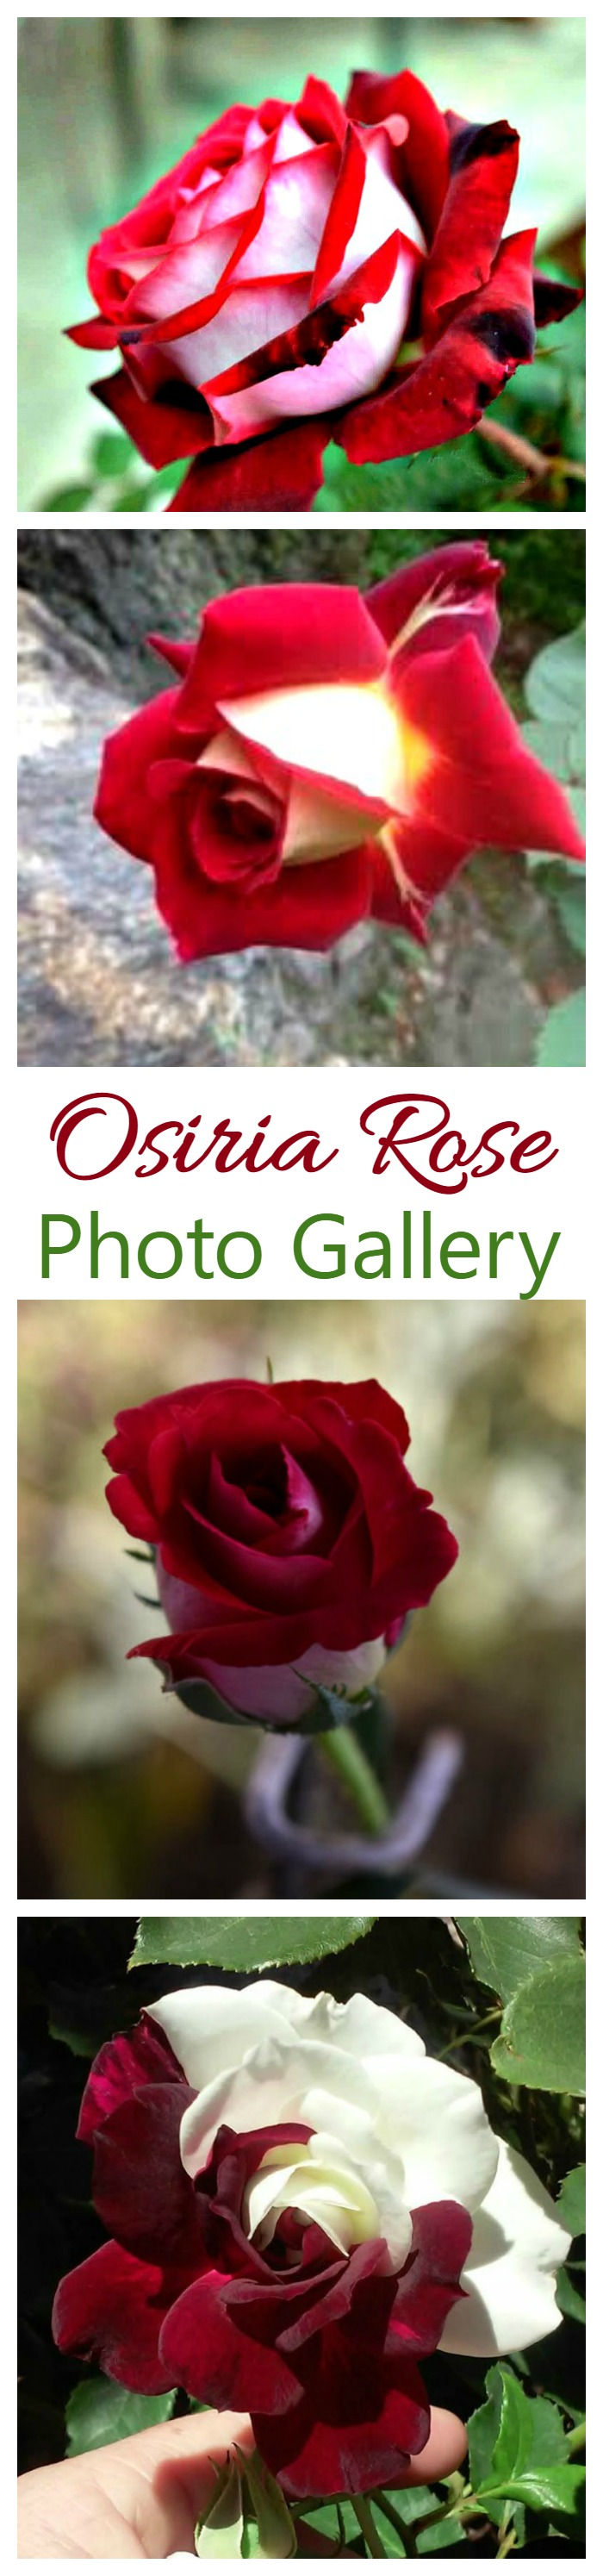 Osiria Rose is a hard to grow and VERY hard to find rose. I have started an Osiria Rose Photo Gallery on my site. If you have grown the rose, please share you photo for my readers.